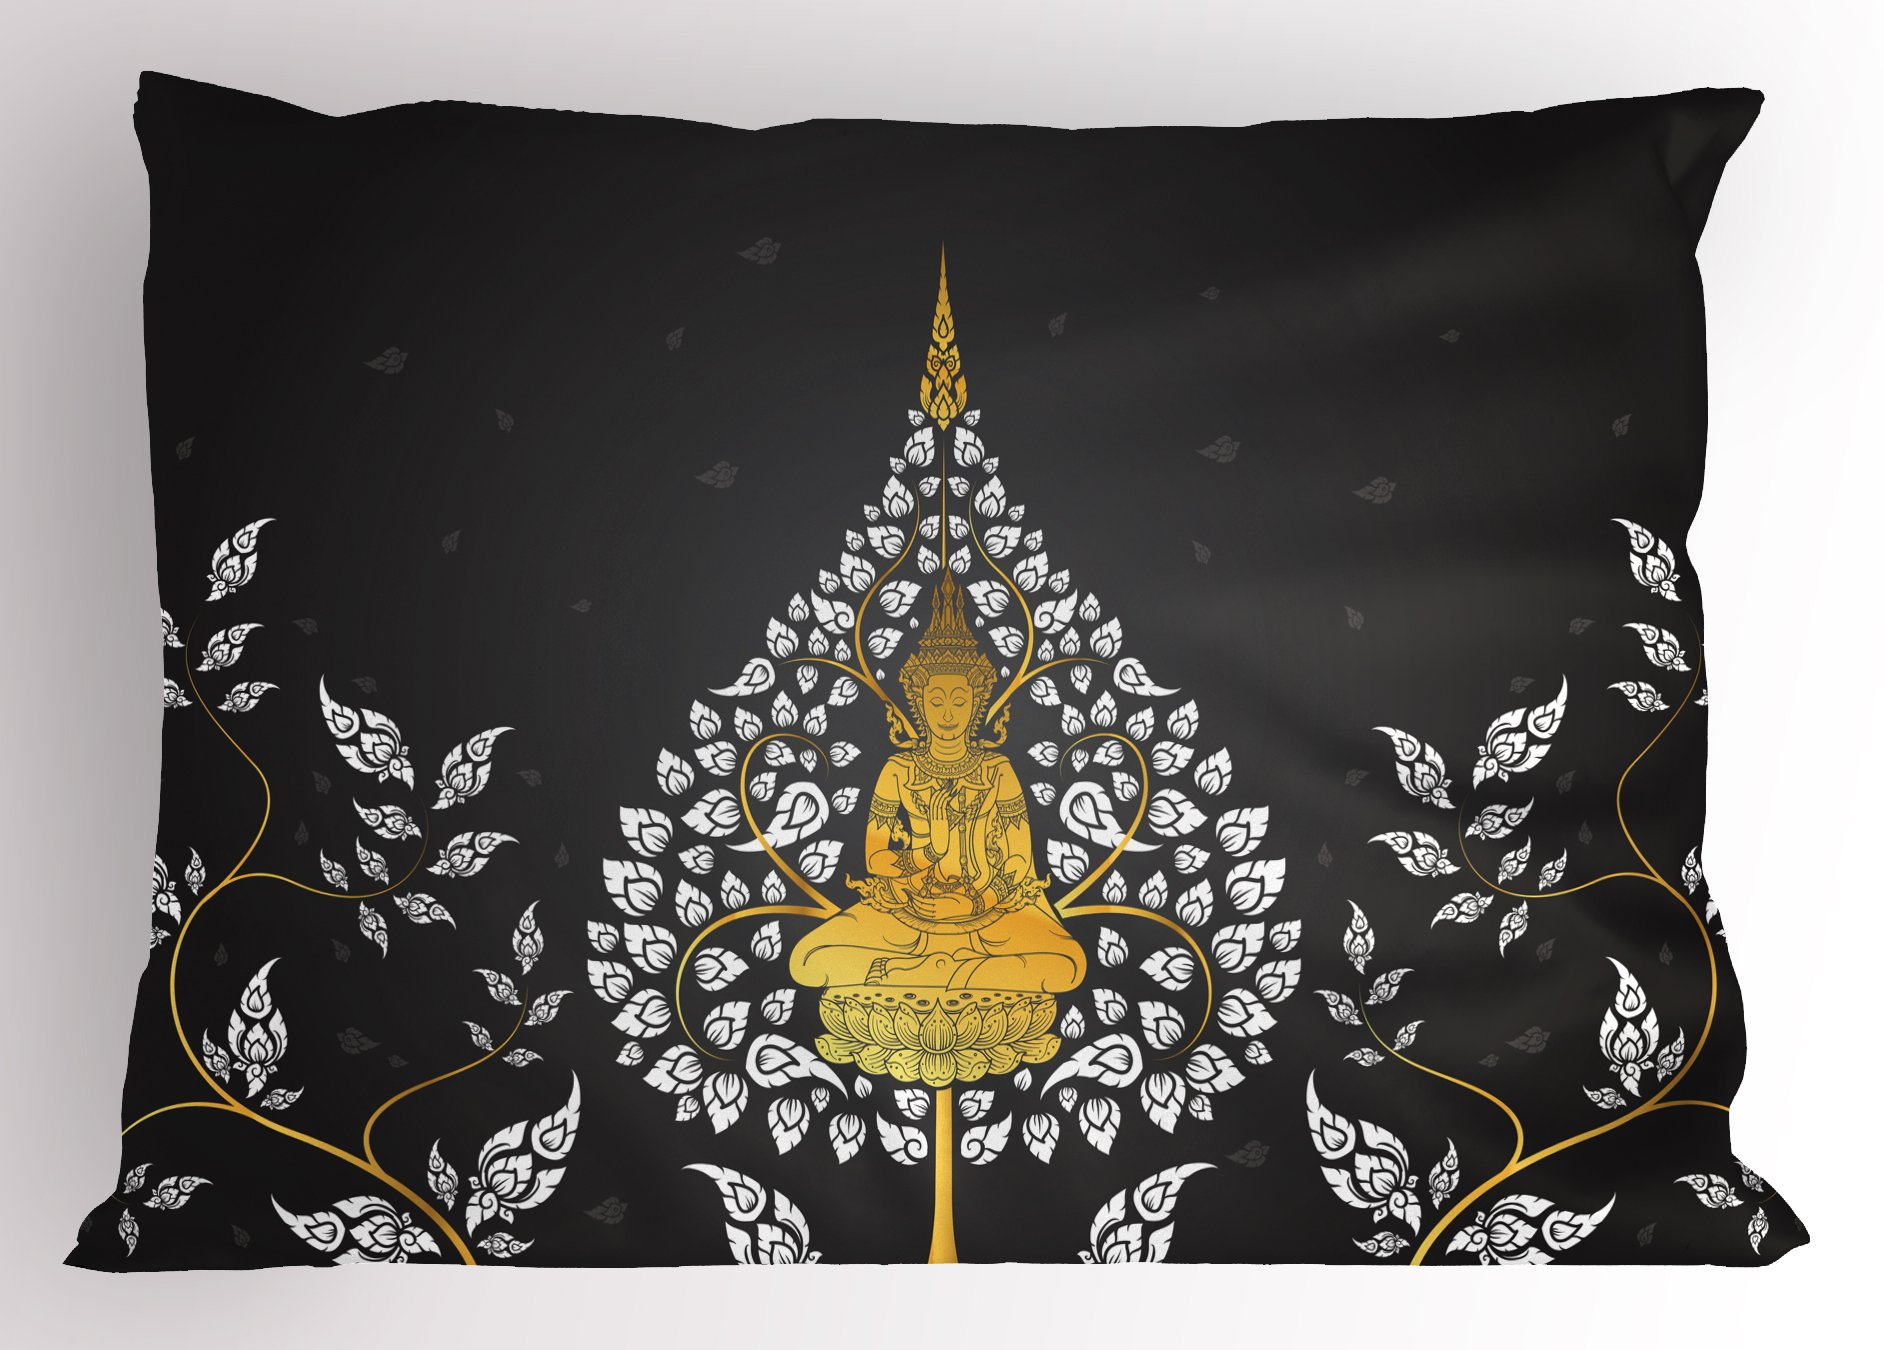 Lunarable Asian Pillow Sham, Ancient Religious Thai Character with Floral Elements Meditation, Decorative Standard Queen Size Printed Pillowcase, 30 X 20 inches, Charcoal Grey White Yellow by Lunarable